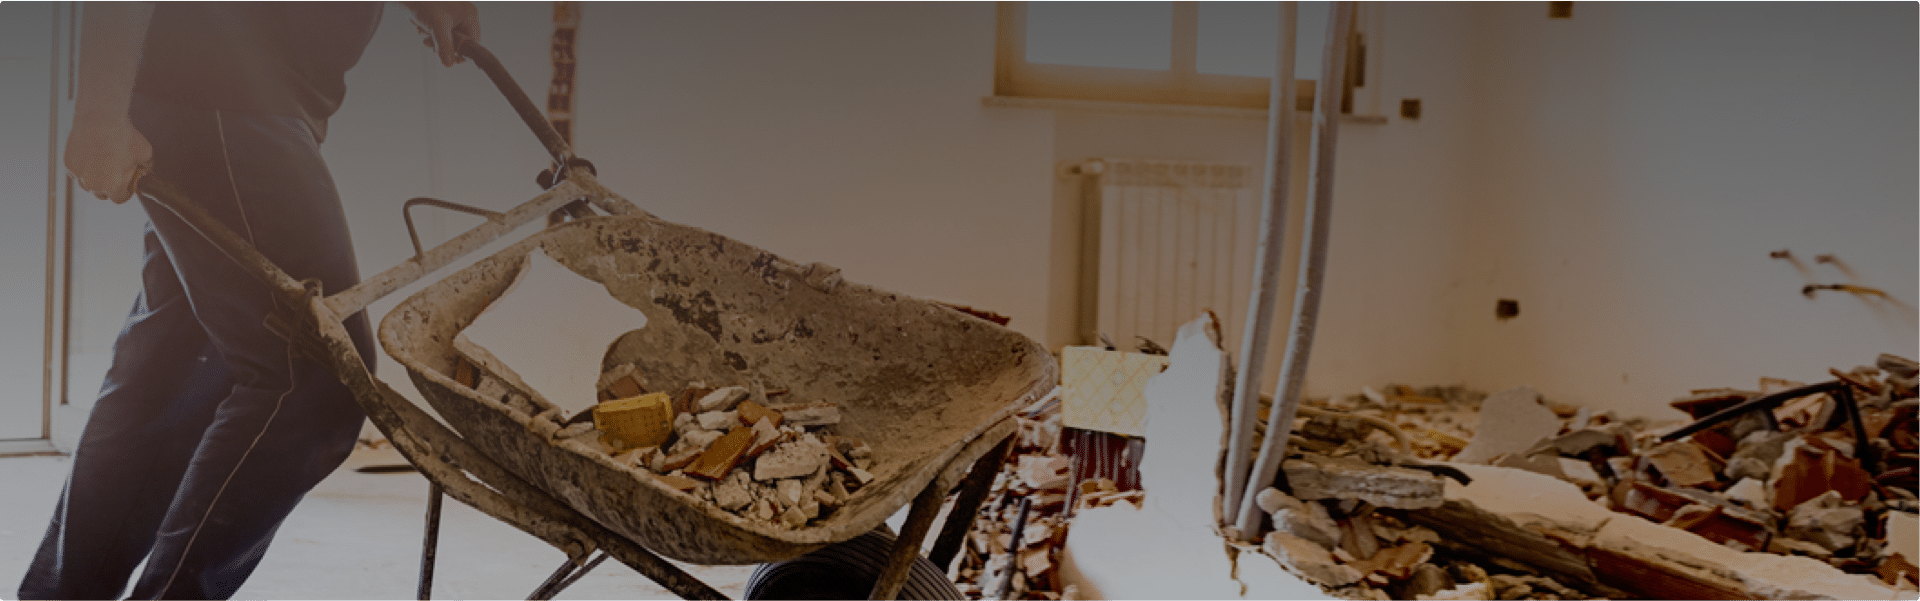 Construction site debris removal insurance